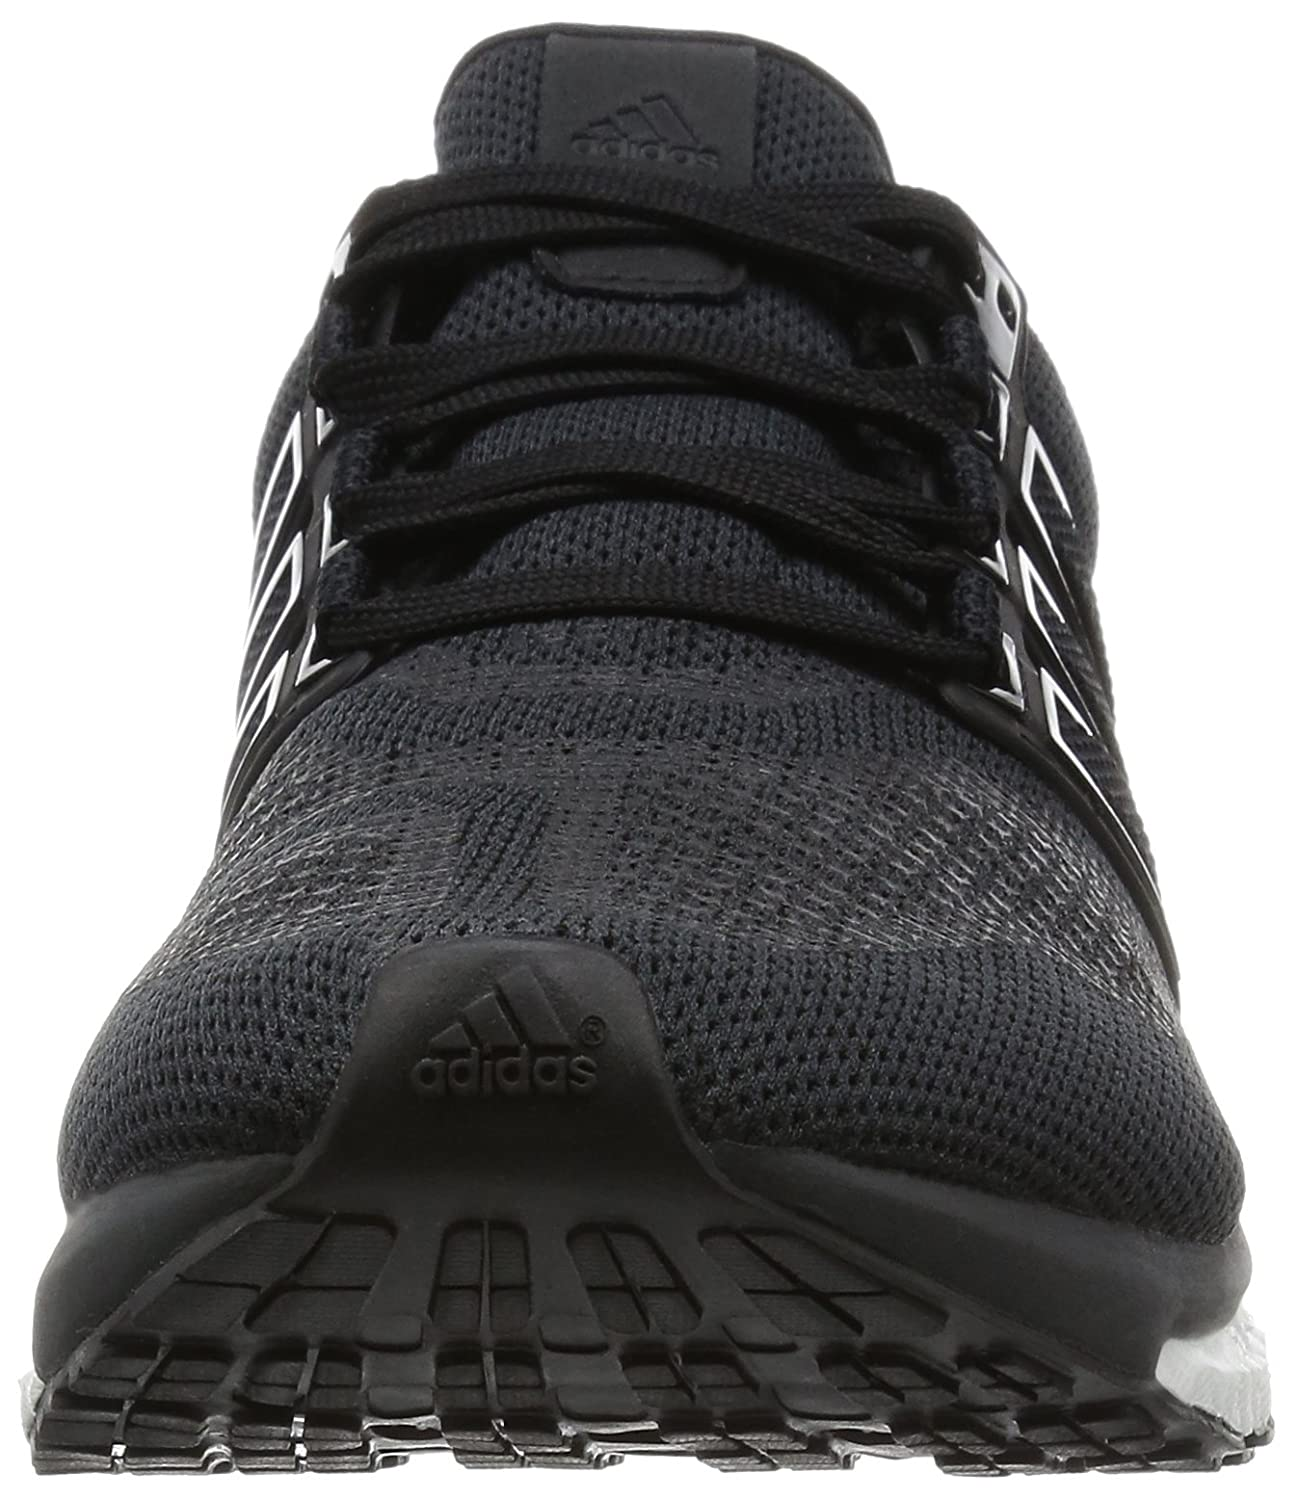 innovative design 2b656 6fe84 adidas Energy Boost 3 M, Scarpe Running Uomo, Nero (Core Black Dark Grey Dgh  Solid Grey), 42 EU  Amazon.it  Scarpe e borse